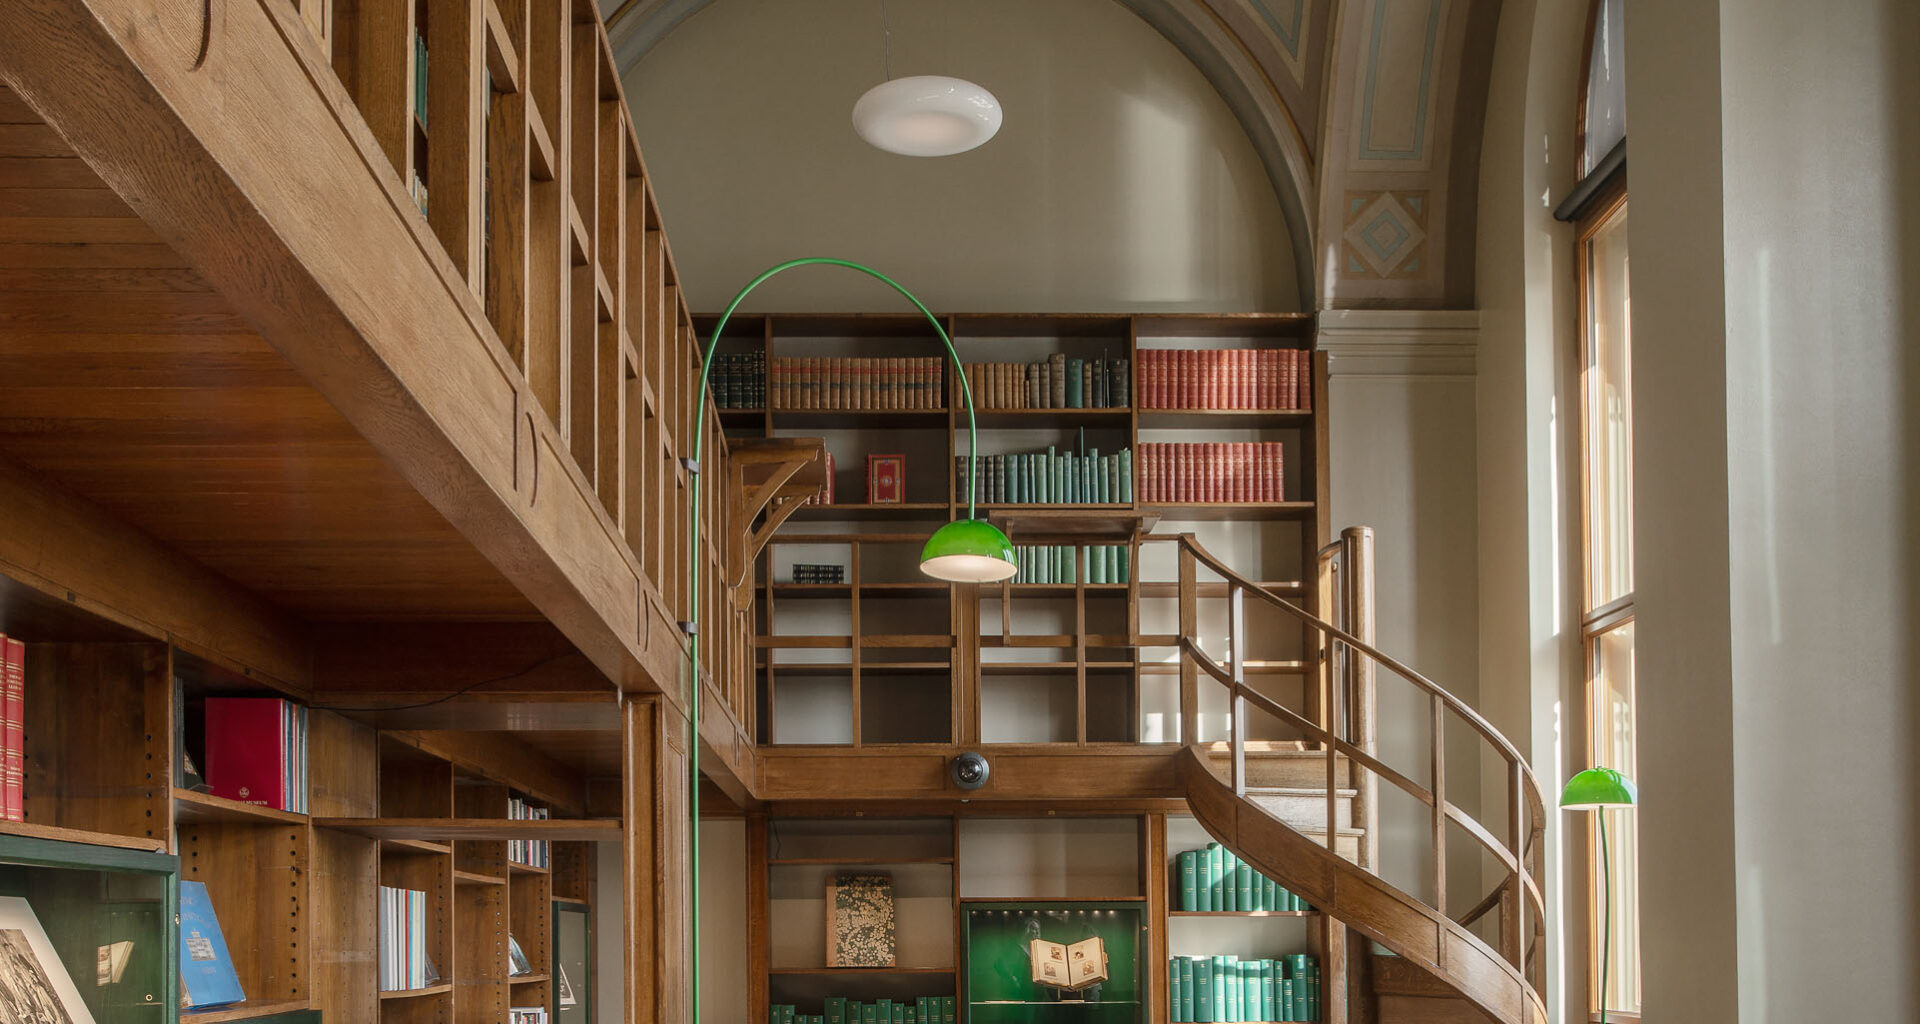 Emma Olbers, The Old Library, Nationalmuseum, Stockholm, Sweden, Europe, museum, library,